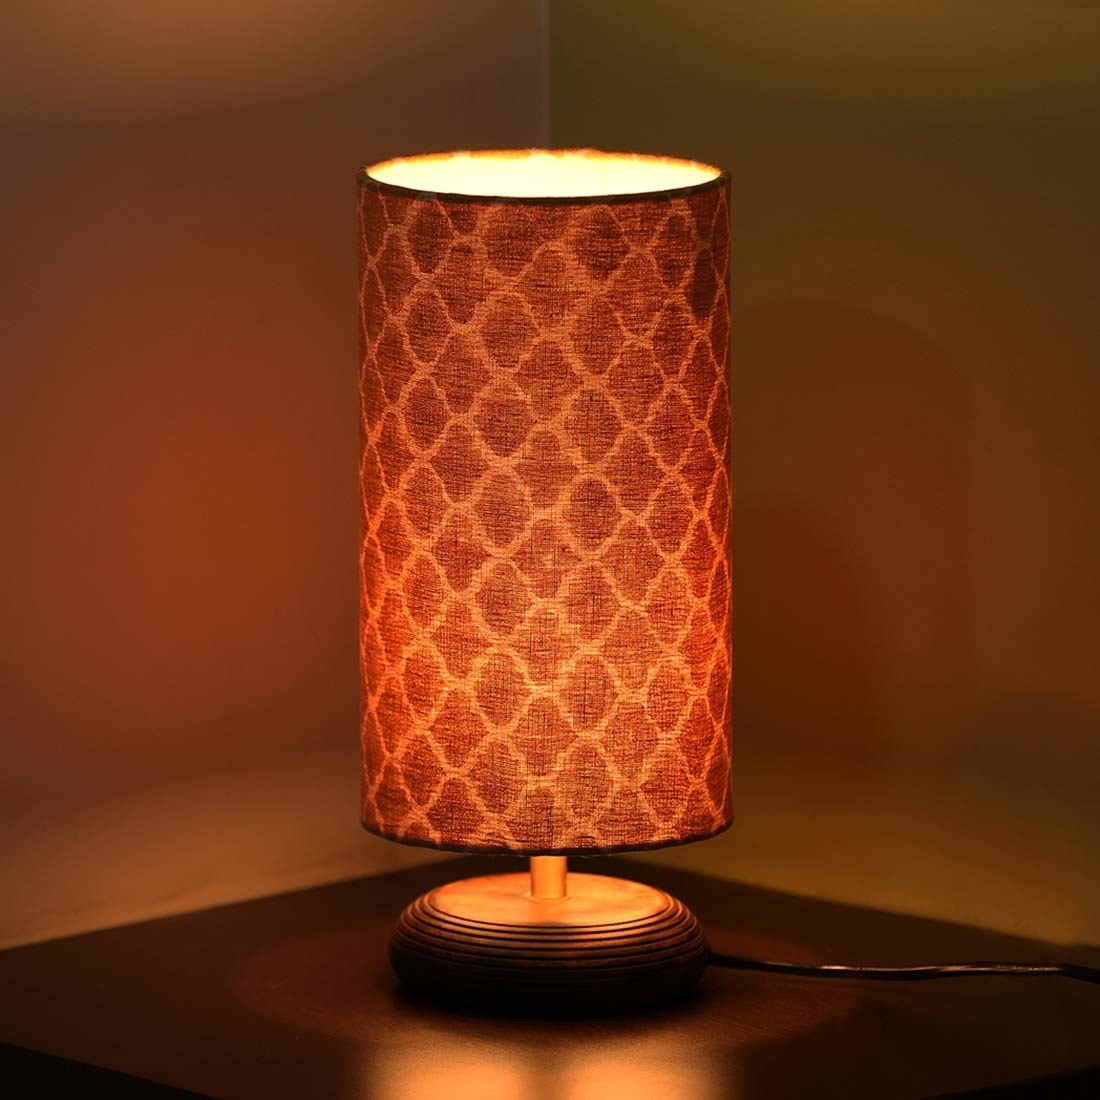 A Mangowood lamp with Moroccan patterns on it